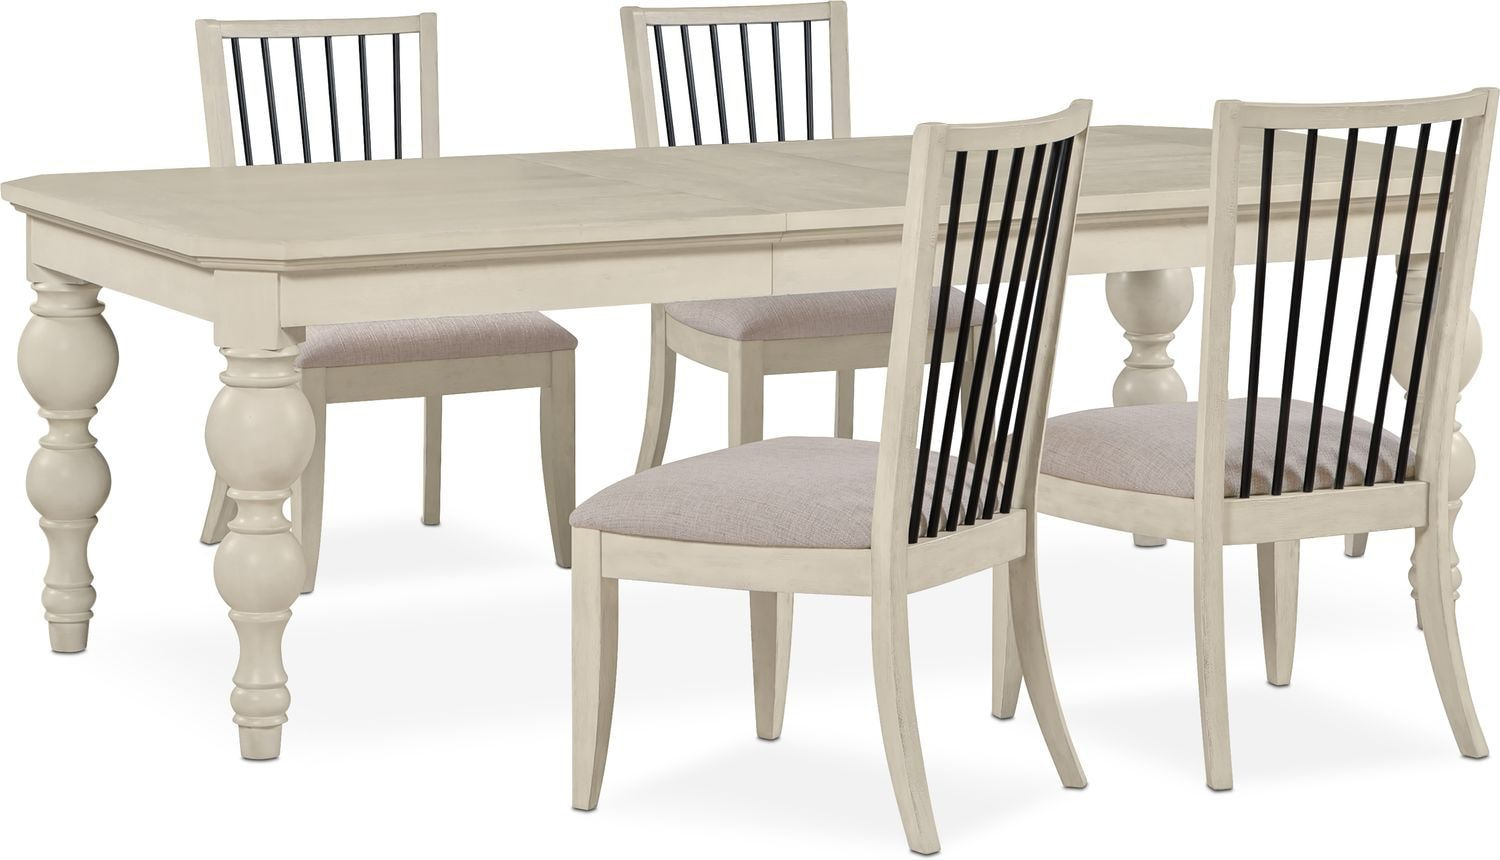 Dining Room Furniture - Gristmill Dining Table and 4 Side Chairs - Linen